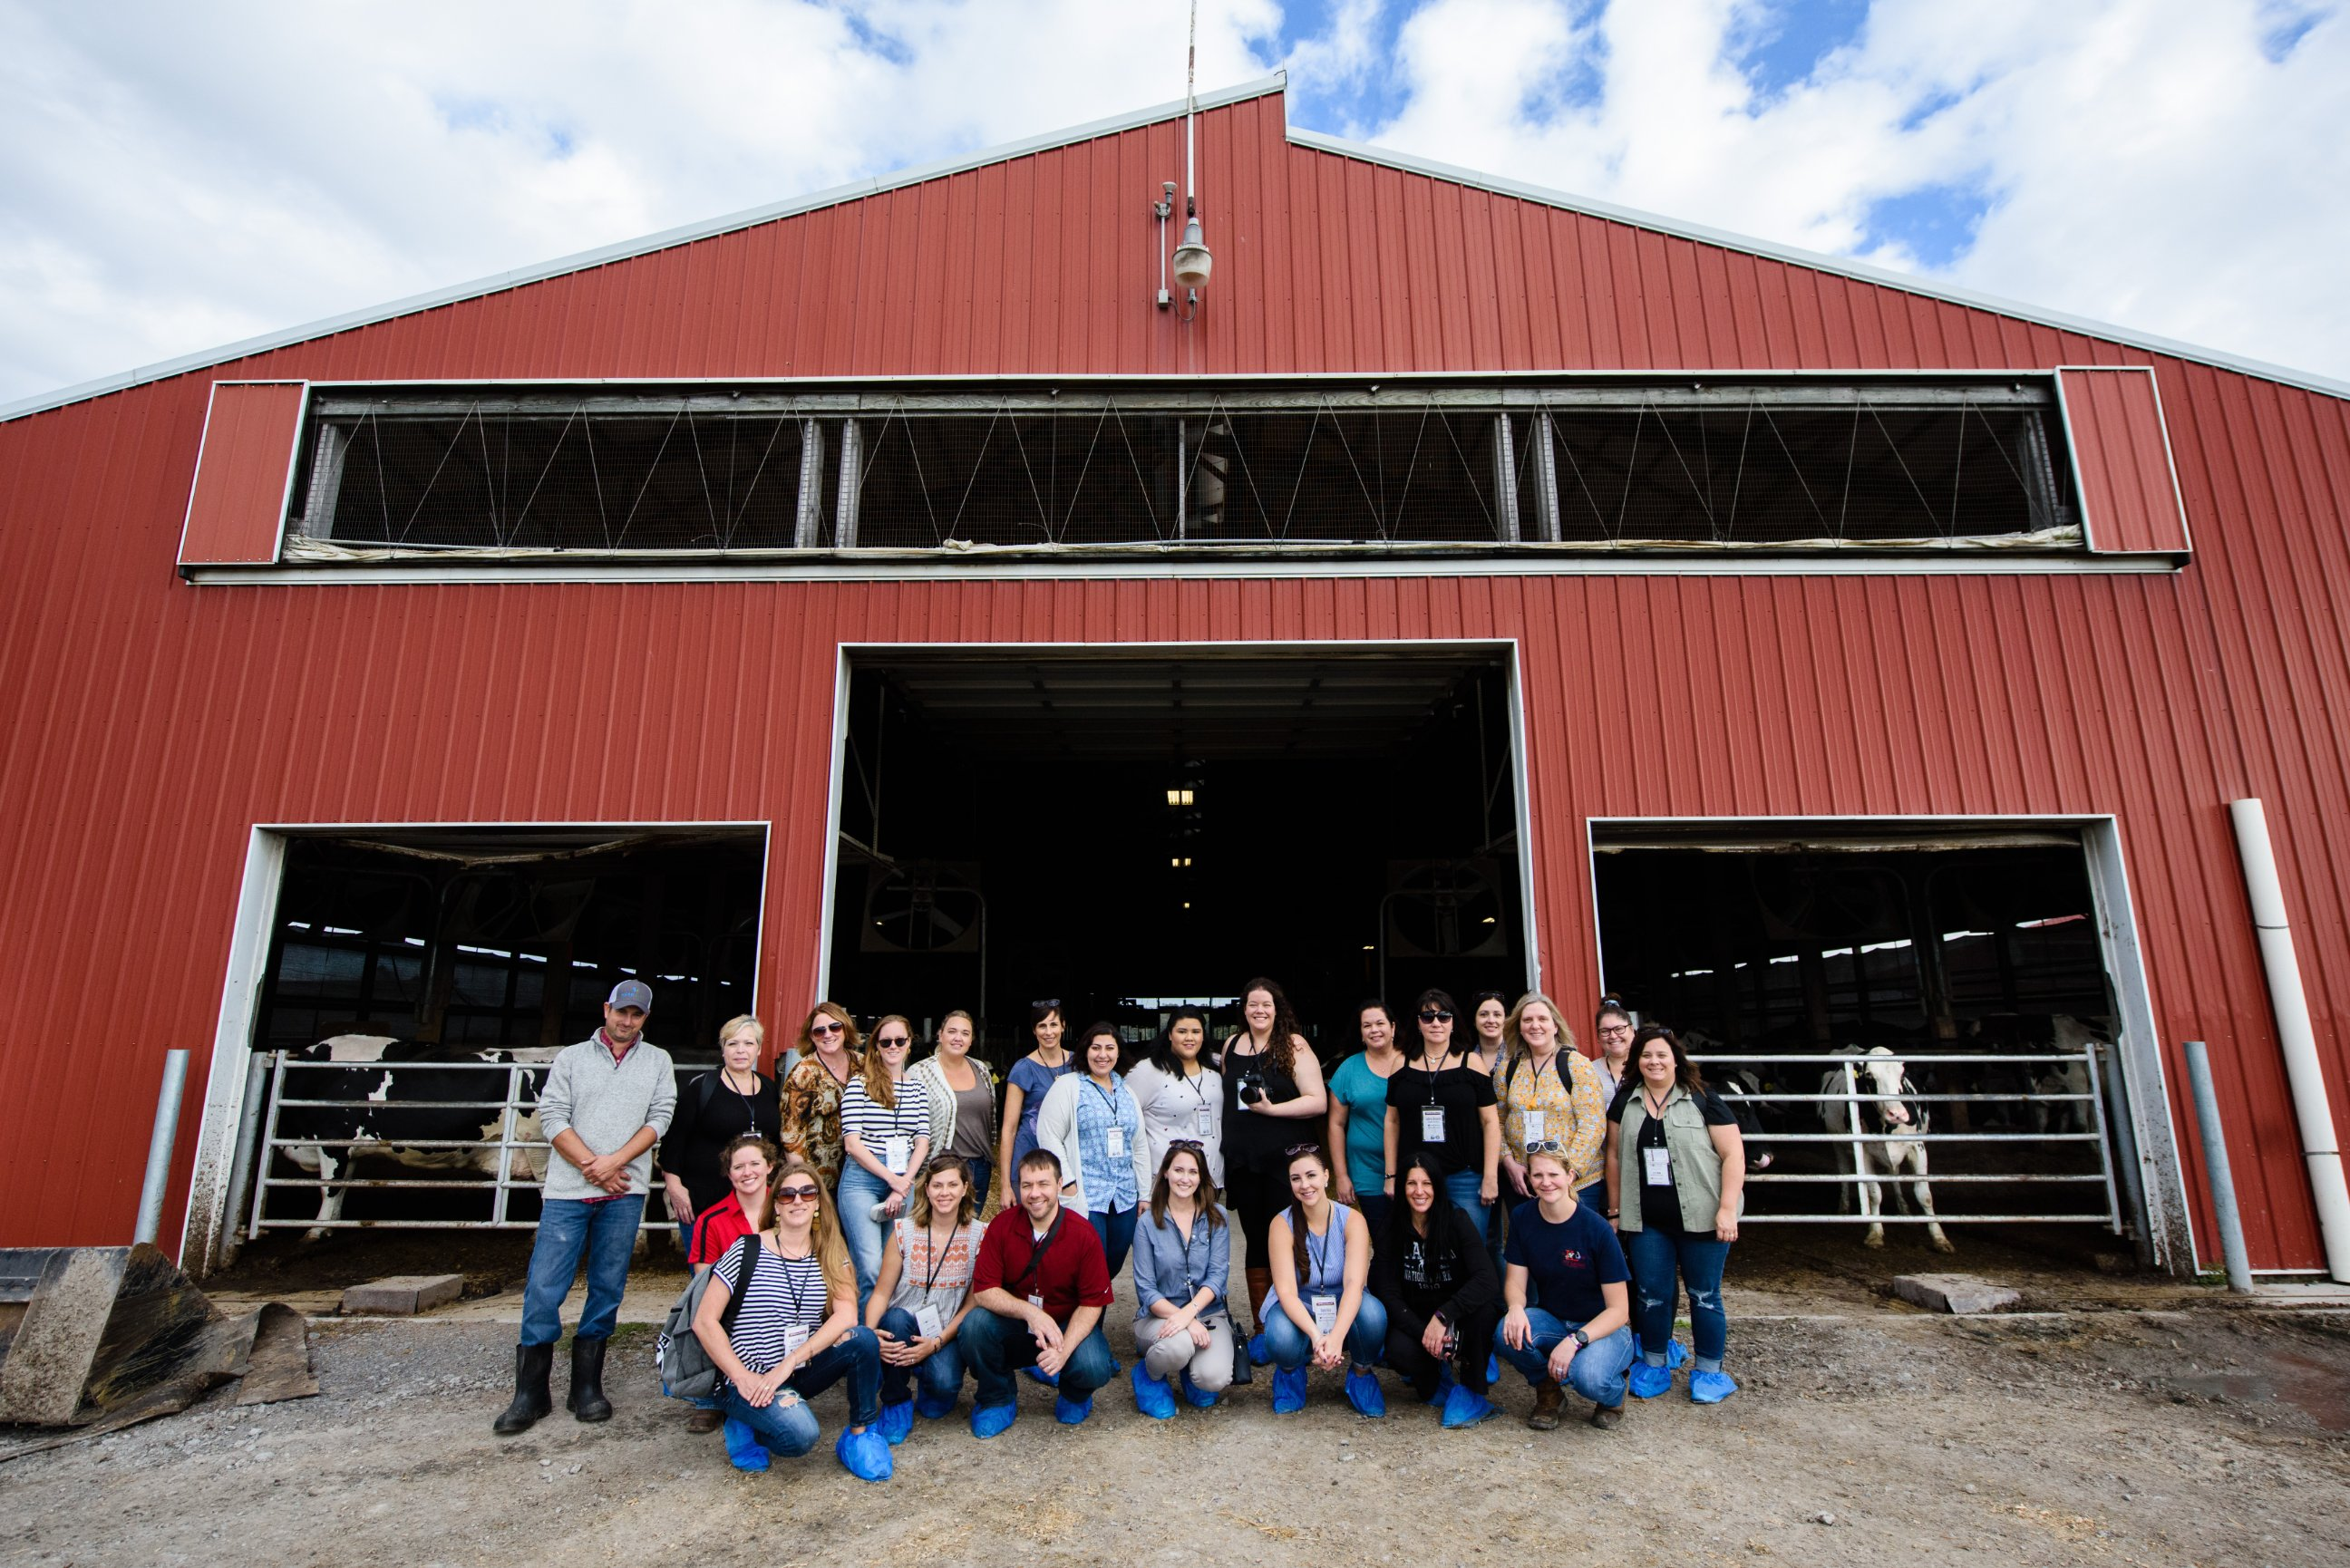 American Dairy Association North East 2018 Dairy Tour Bloggers